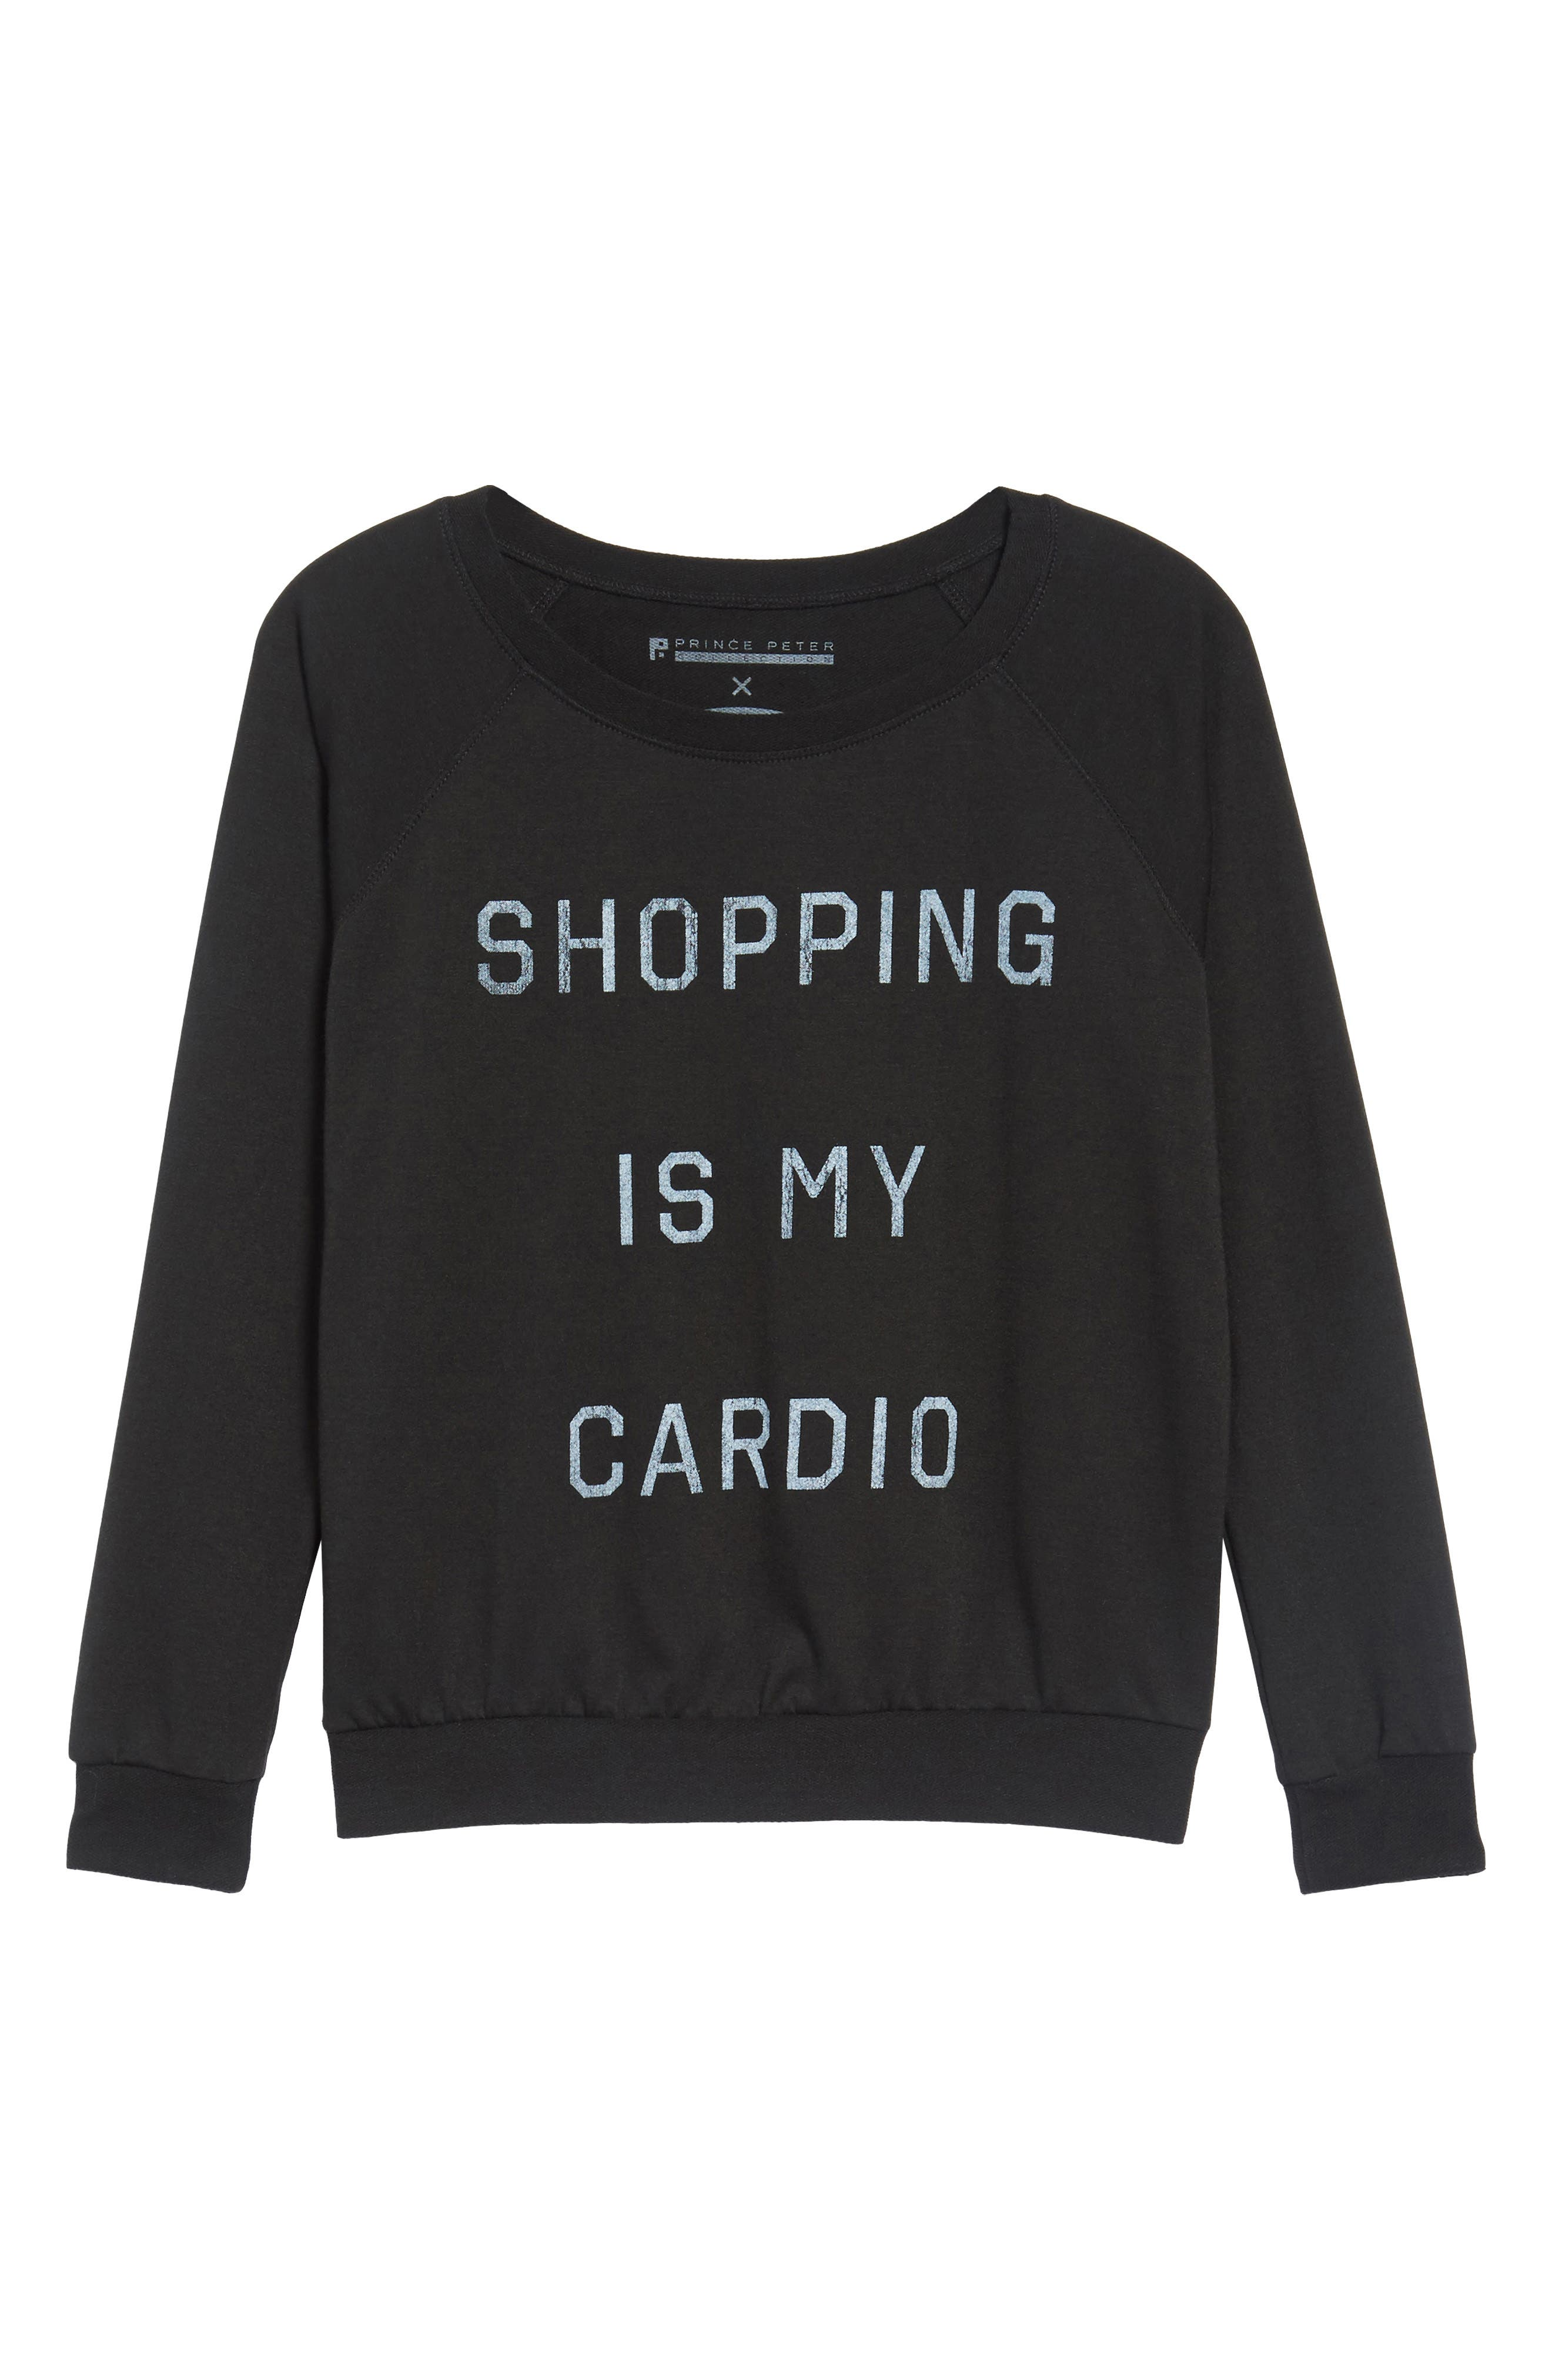 Shopping is My Cardio Tee,                             Alternate thumbnail 6, color,